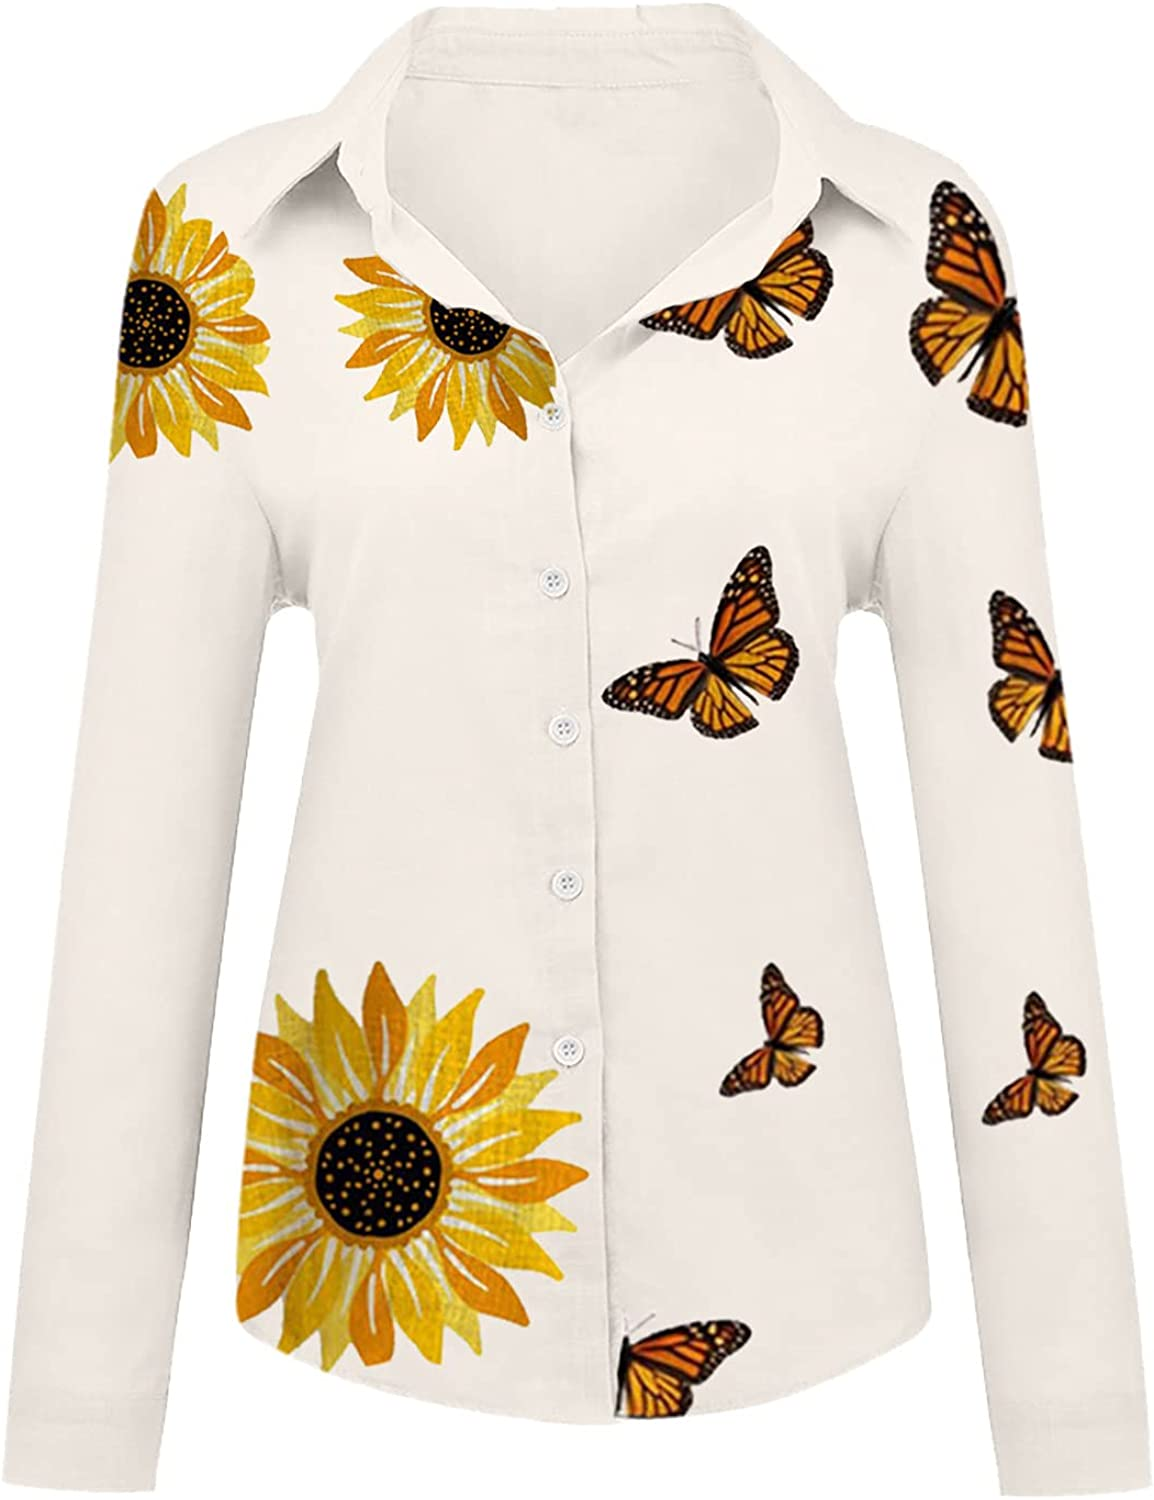 Fashion Shirts for Women's Loose Butterfly Printed Solid Color Cotton Linen Buttons Lapel Long Sleeves Blouse Tops